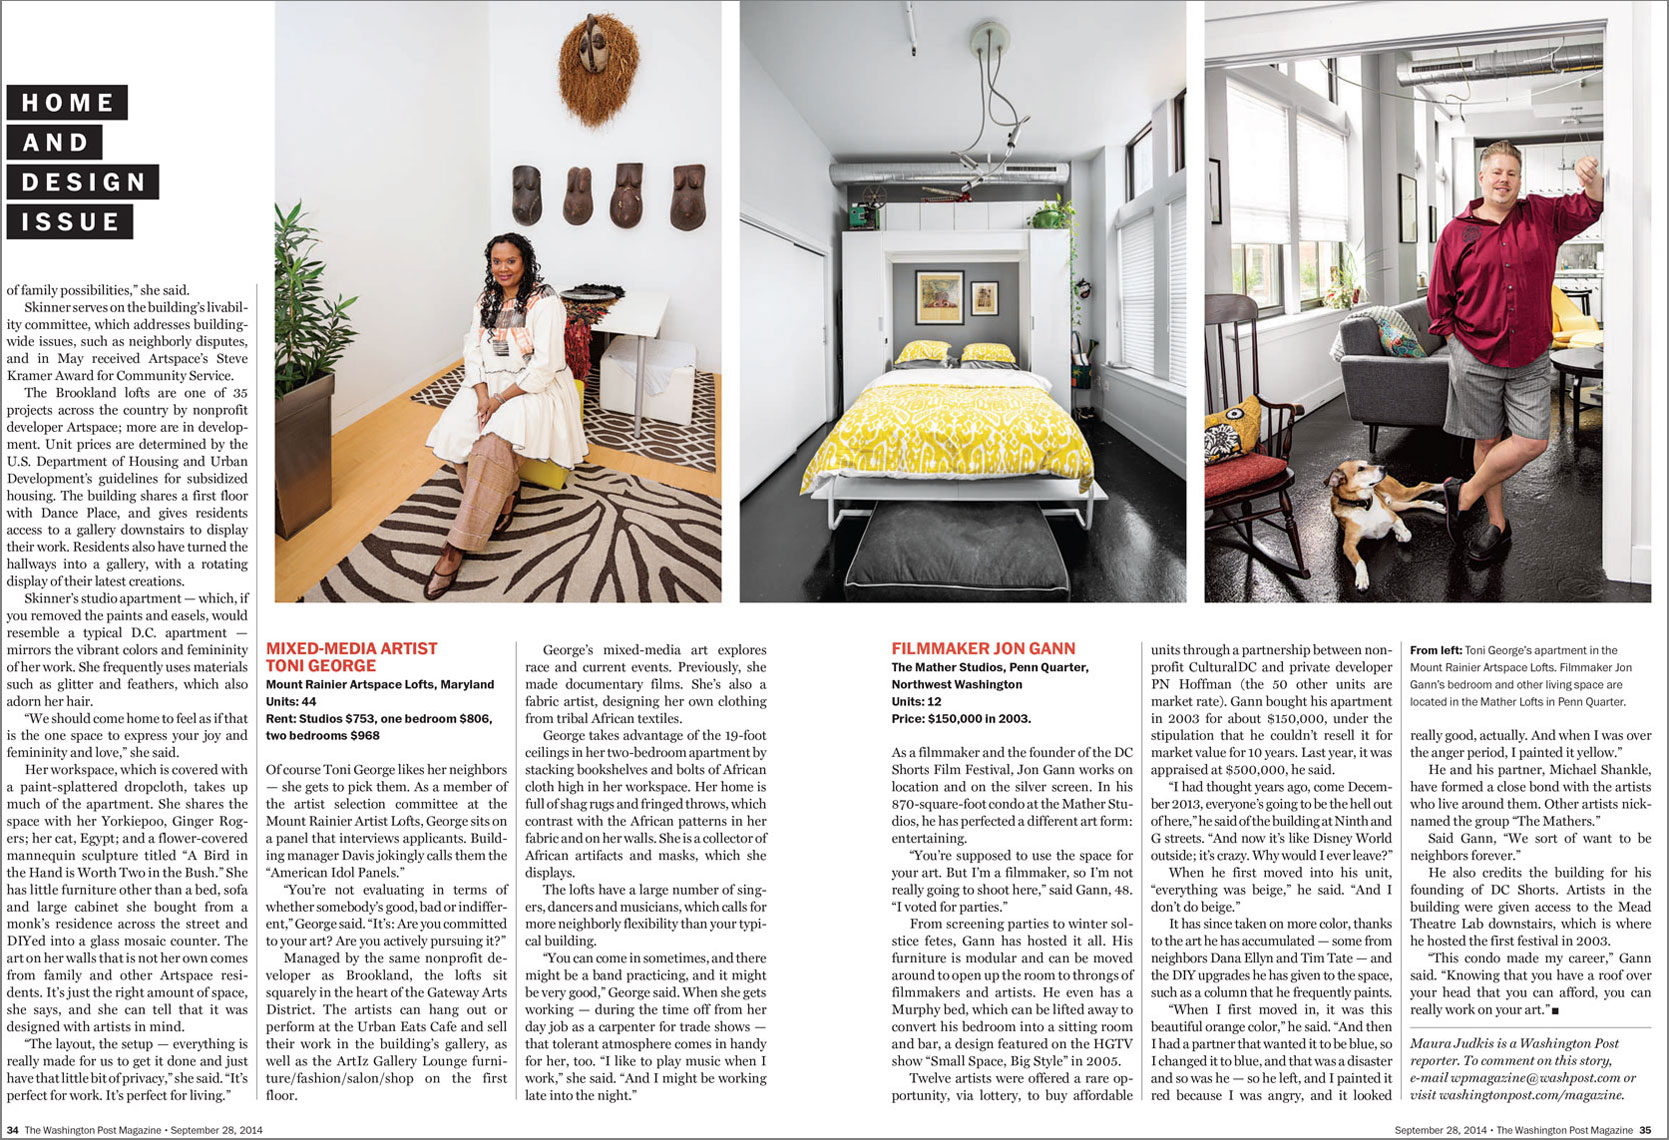 Washington Post Magazine Home and Design Issue spread